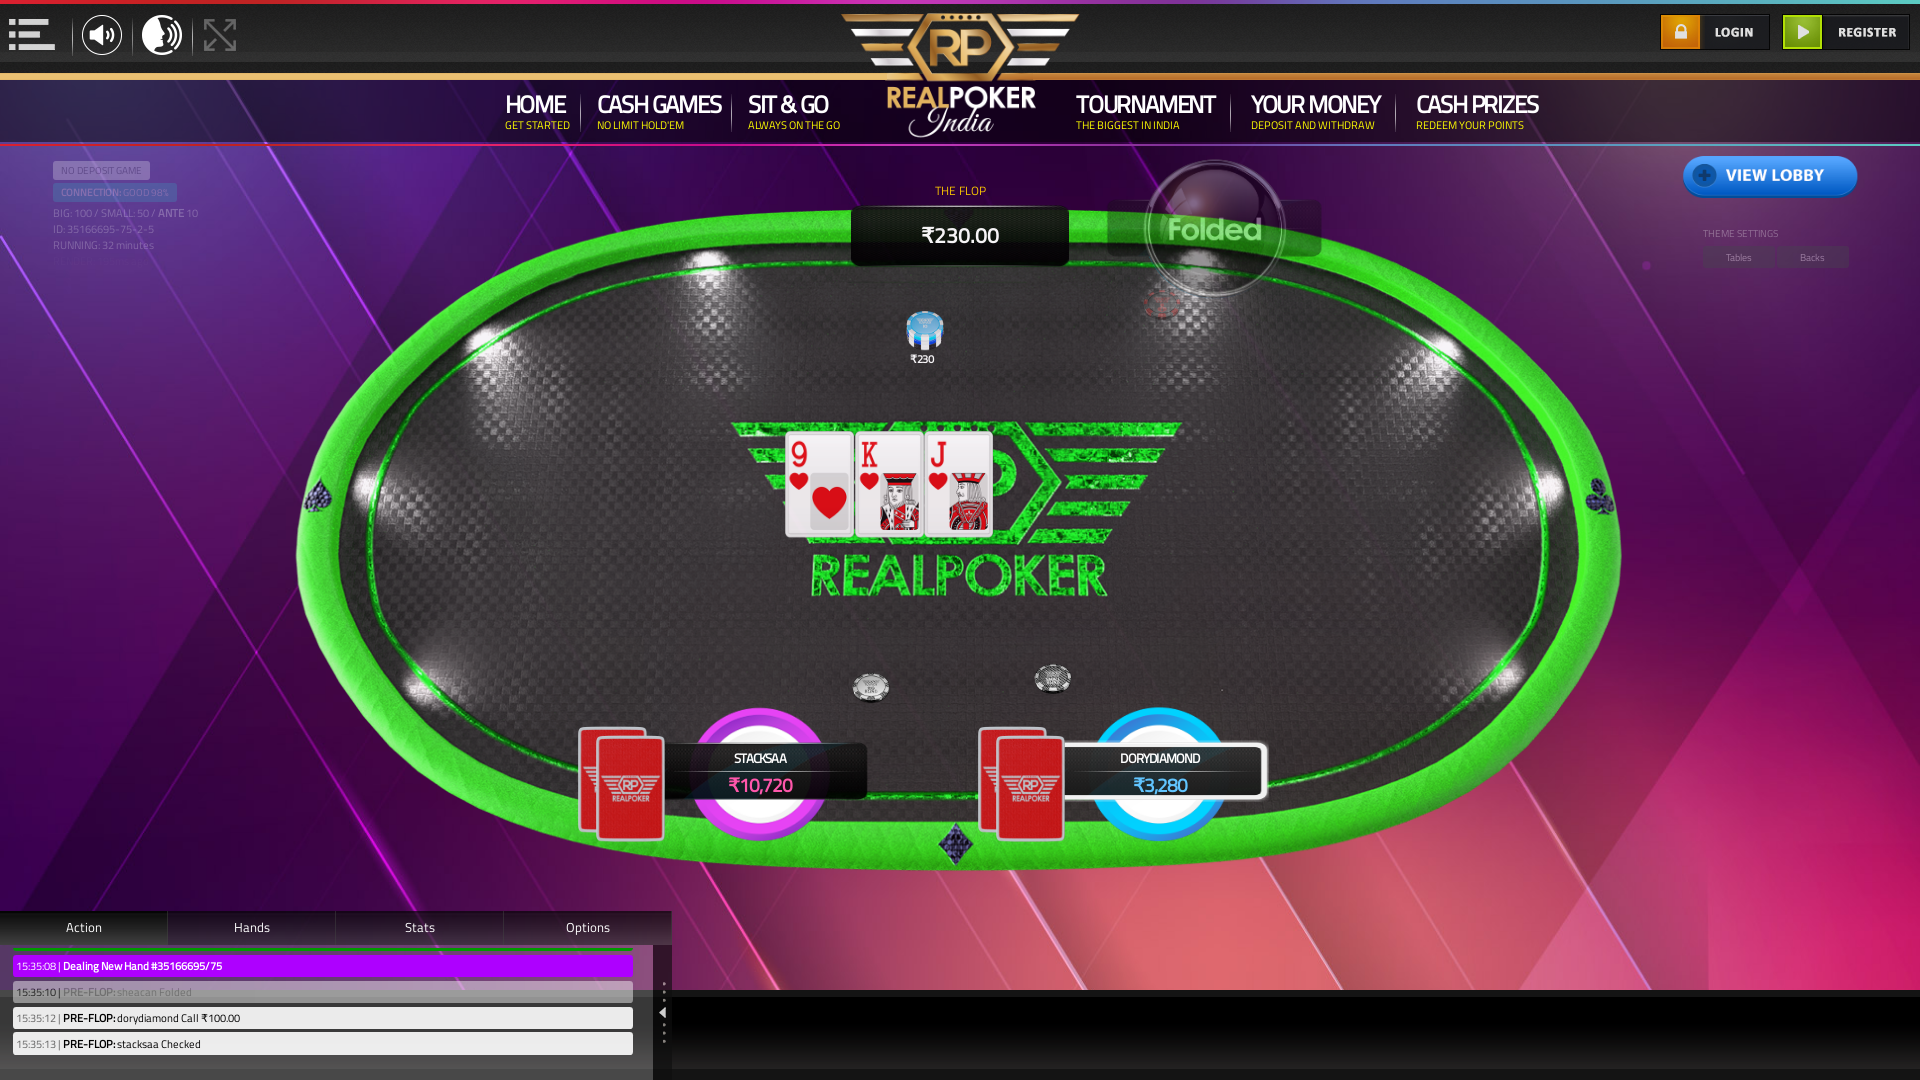 indian poker on a 10 player table in the 32nd minute